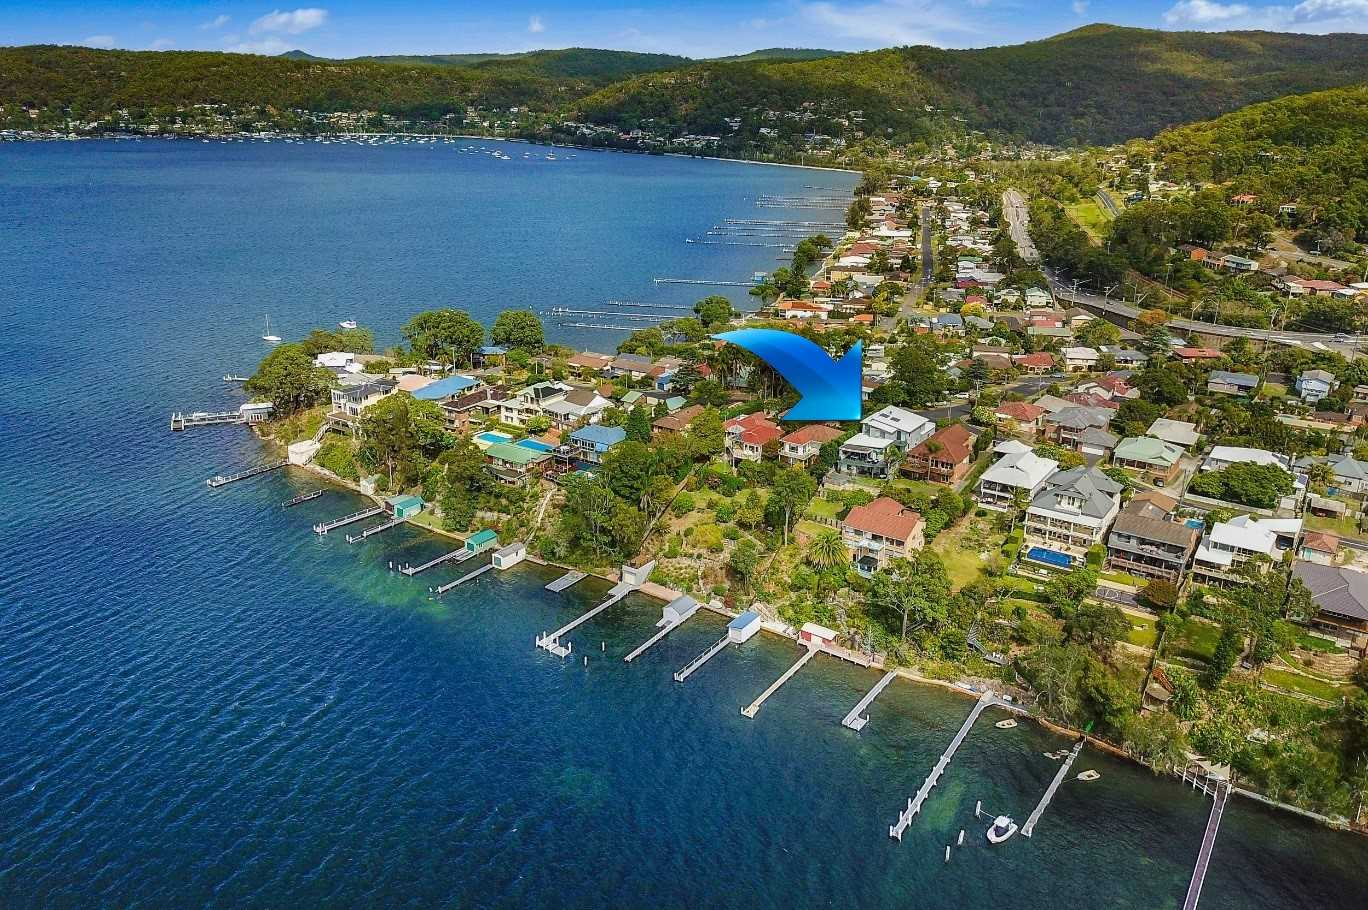 Aerial view property, private jetty, boat-house